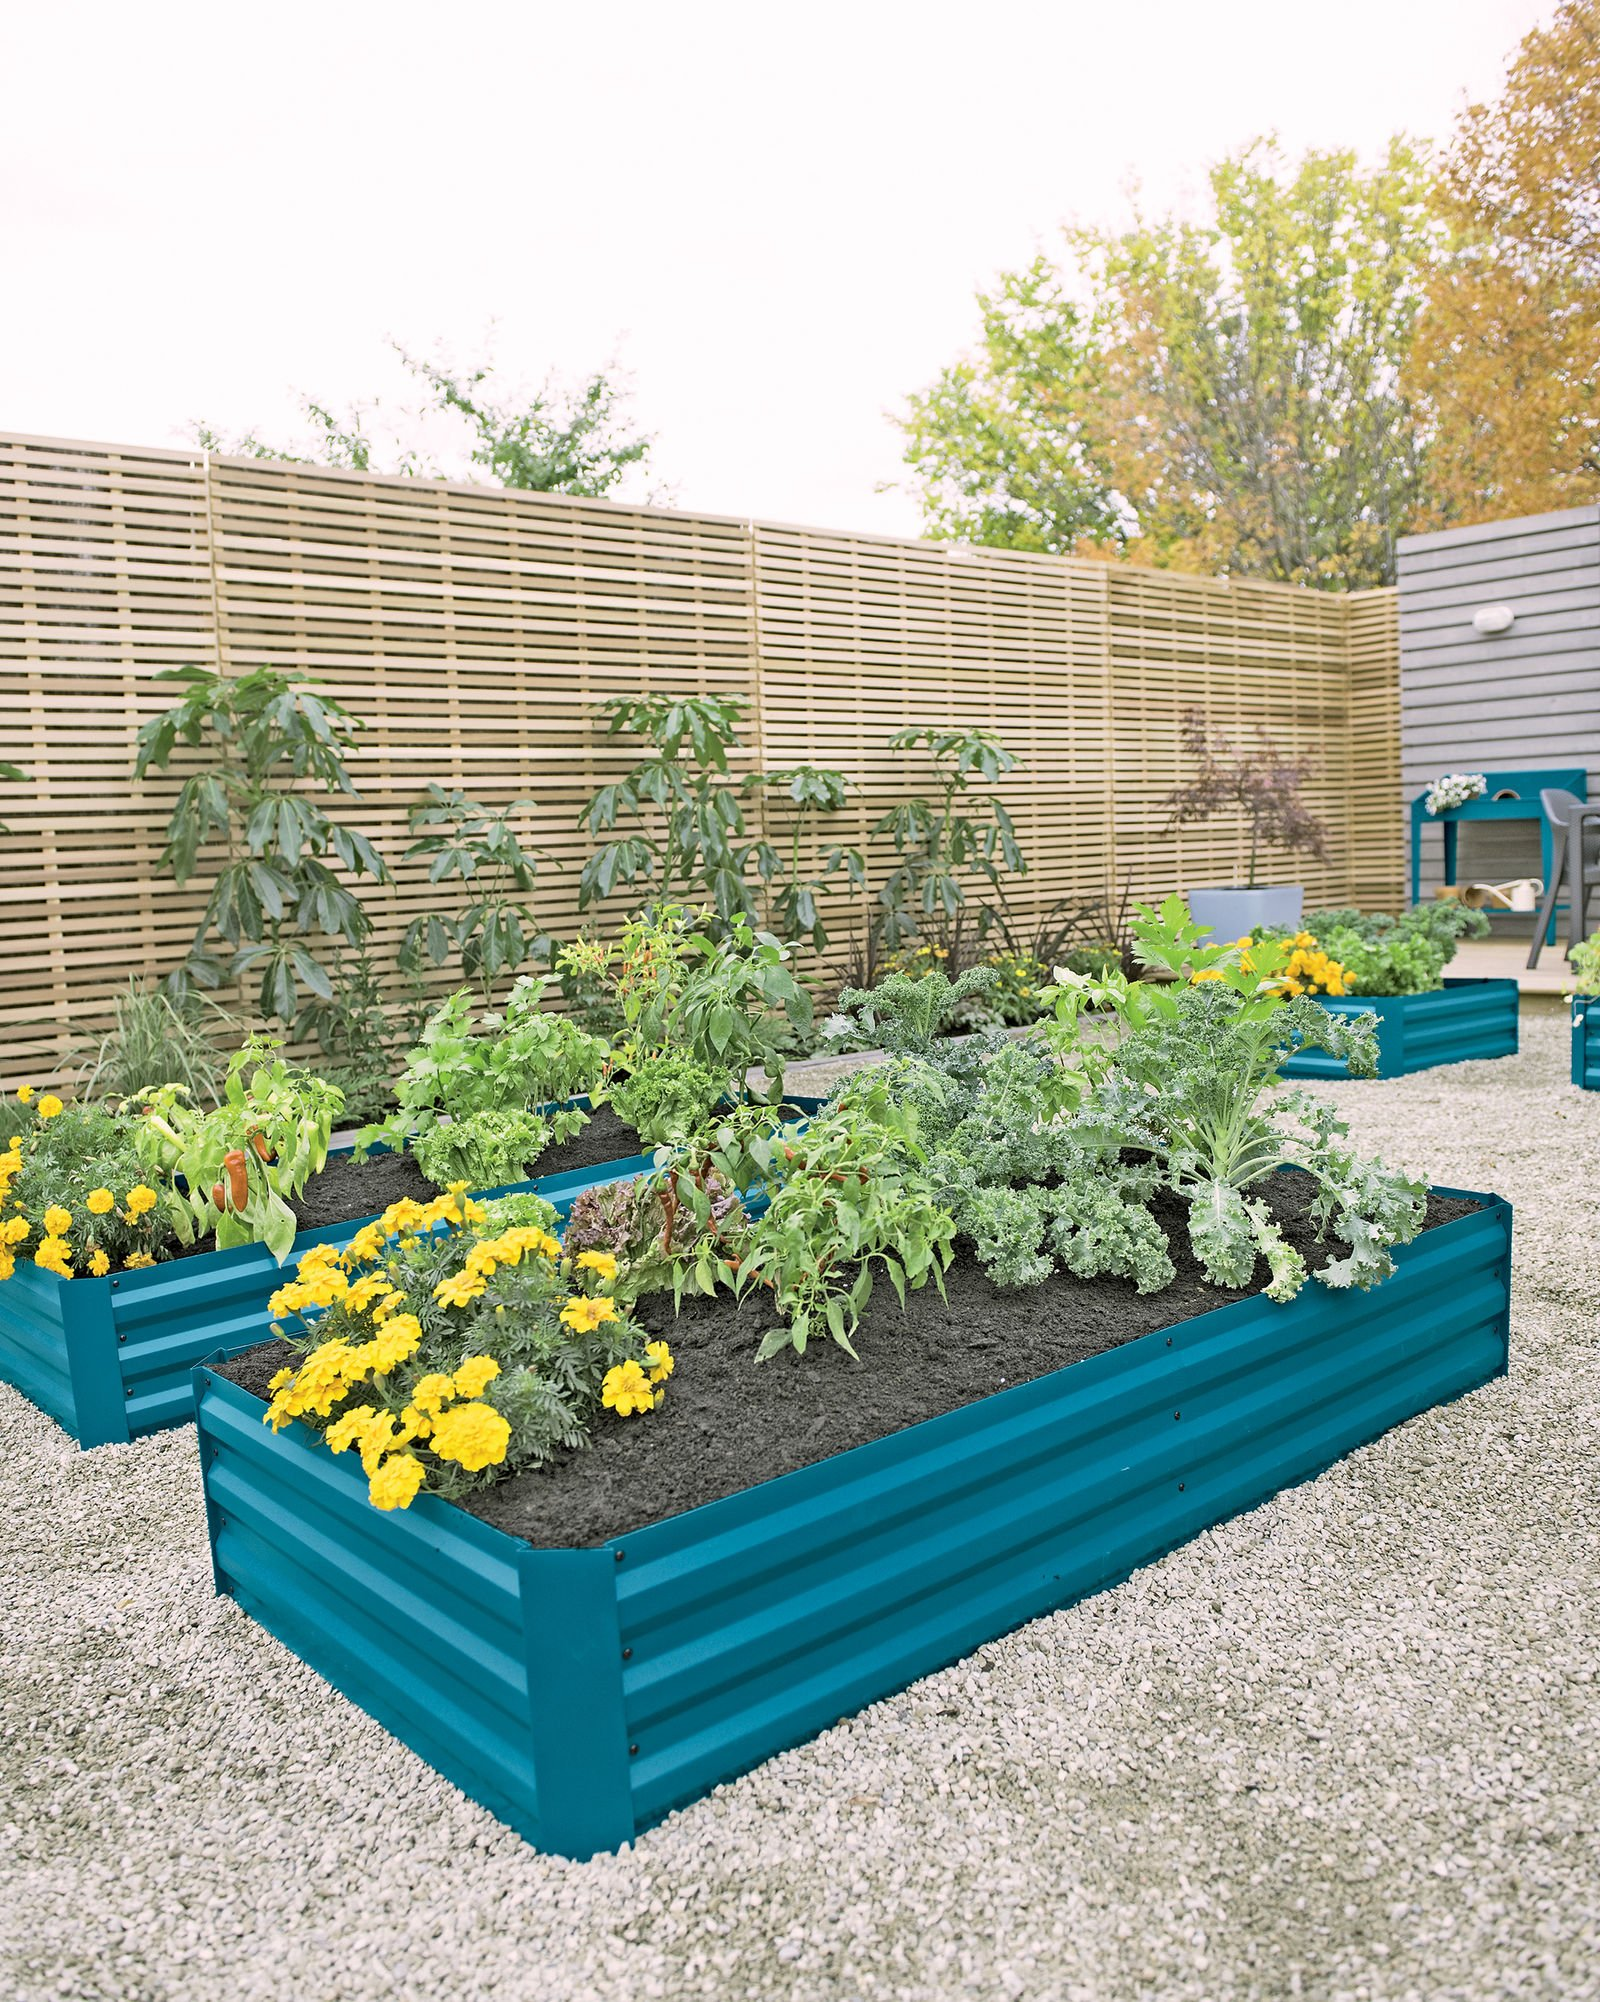 """Gardener's Supply Company Corrugated Metal Powder-Coated Steel Raised Bed, 34"""" x 68"""" Blue 3 STYLISH and STURDY- Richly hued raised bed made from sturdy yet lightweight powder-coated steel complements your landscape and showcases plants. BENEFITS- Extra deep to accommodate large plants. Lightly textured surface. Raised beds are easier to plant and tend than in-ground beds, with fewer pests and weeds. MATERIALS and MEASUREMENTS- Powder-coated steel - 68"""" L x 35-1/4"""" W x 11-3/4"""" H - Holds 17 cu. ft. of soil"""